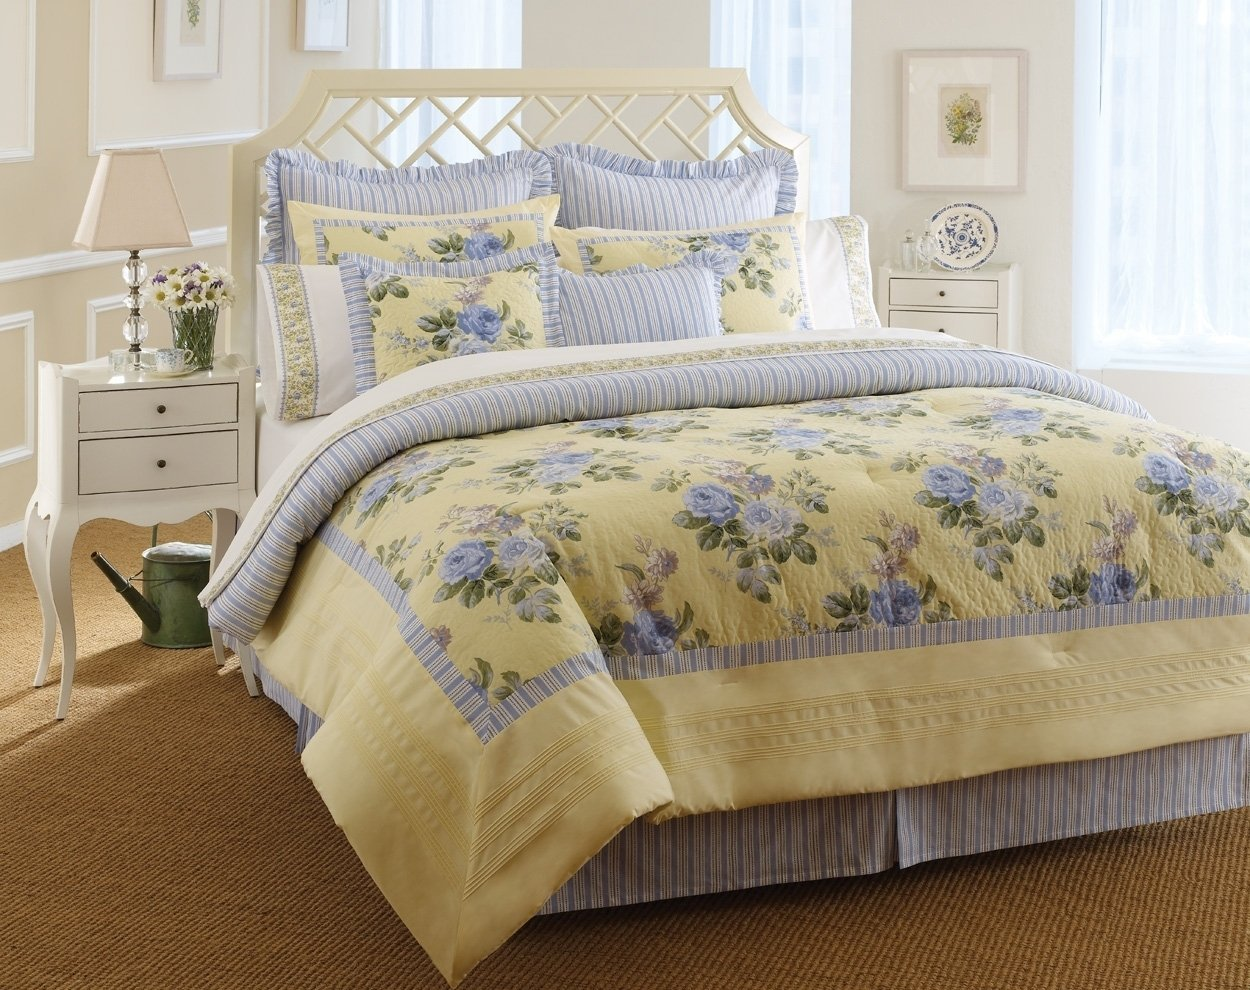 charming laura ashley bedding in blue and yellow floral pattern with white headboard on brown rug for bedroom decor ideas